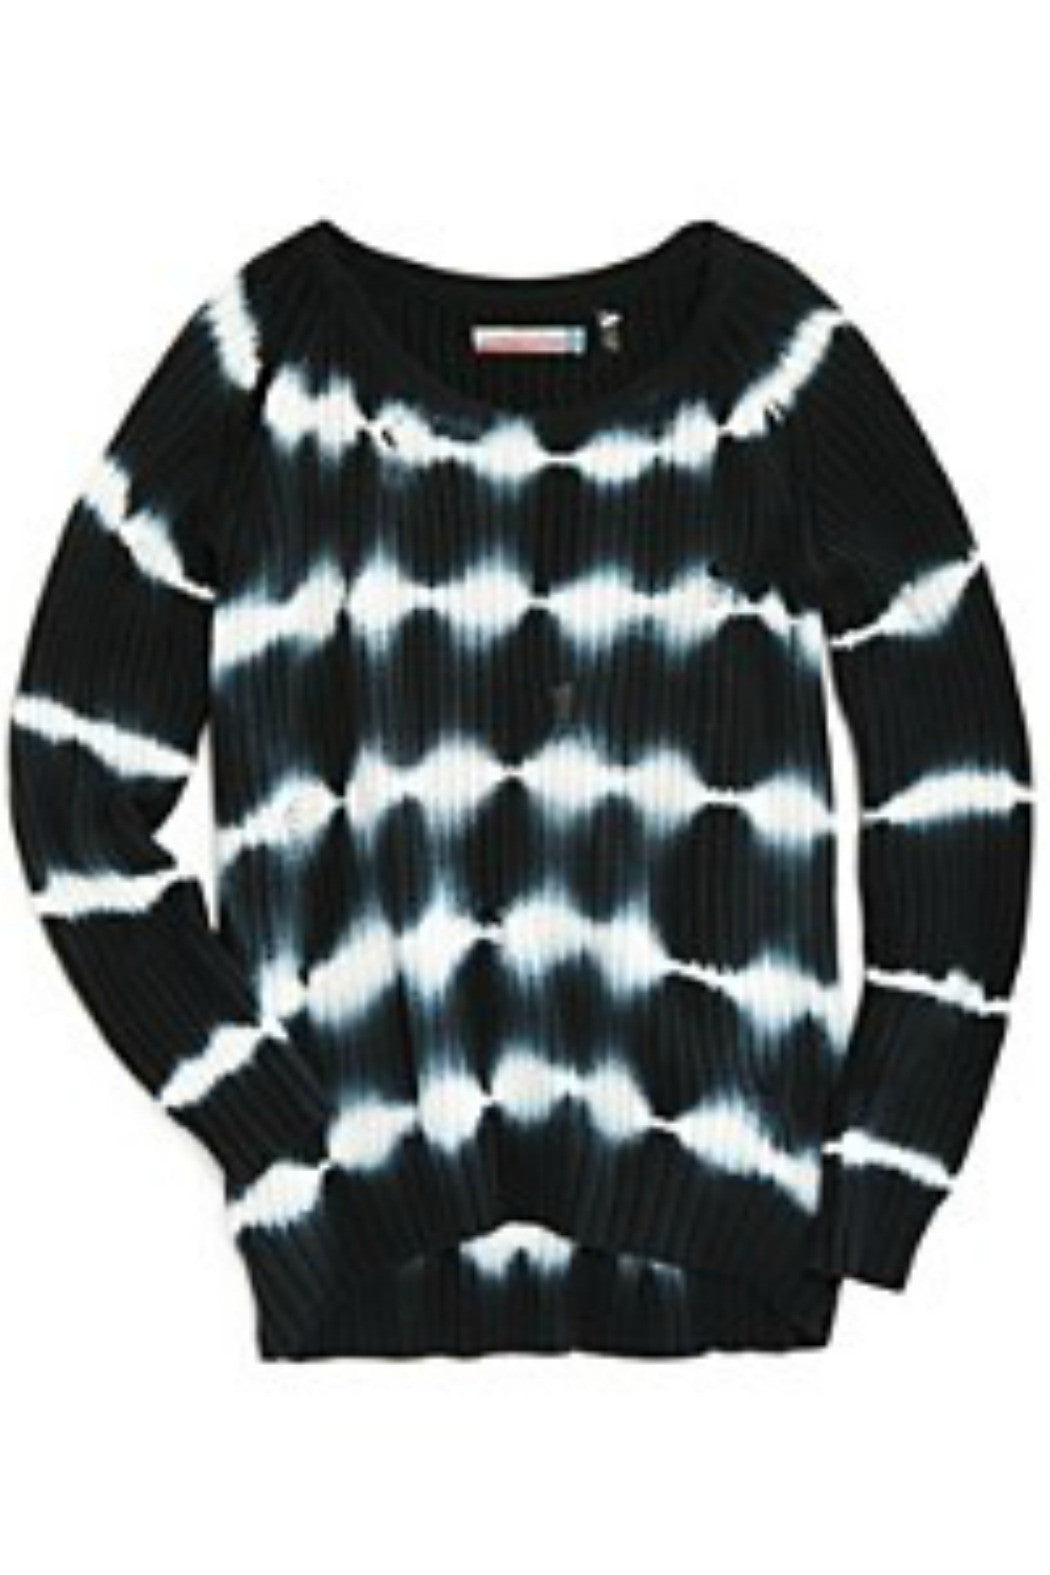 Distressed Tie Dye Sweater - R+D Hipster Emporium | Womens & Mens Clothing